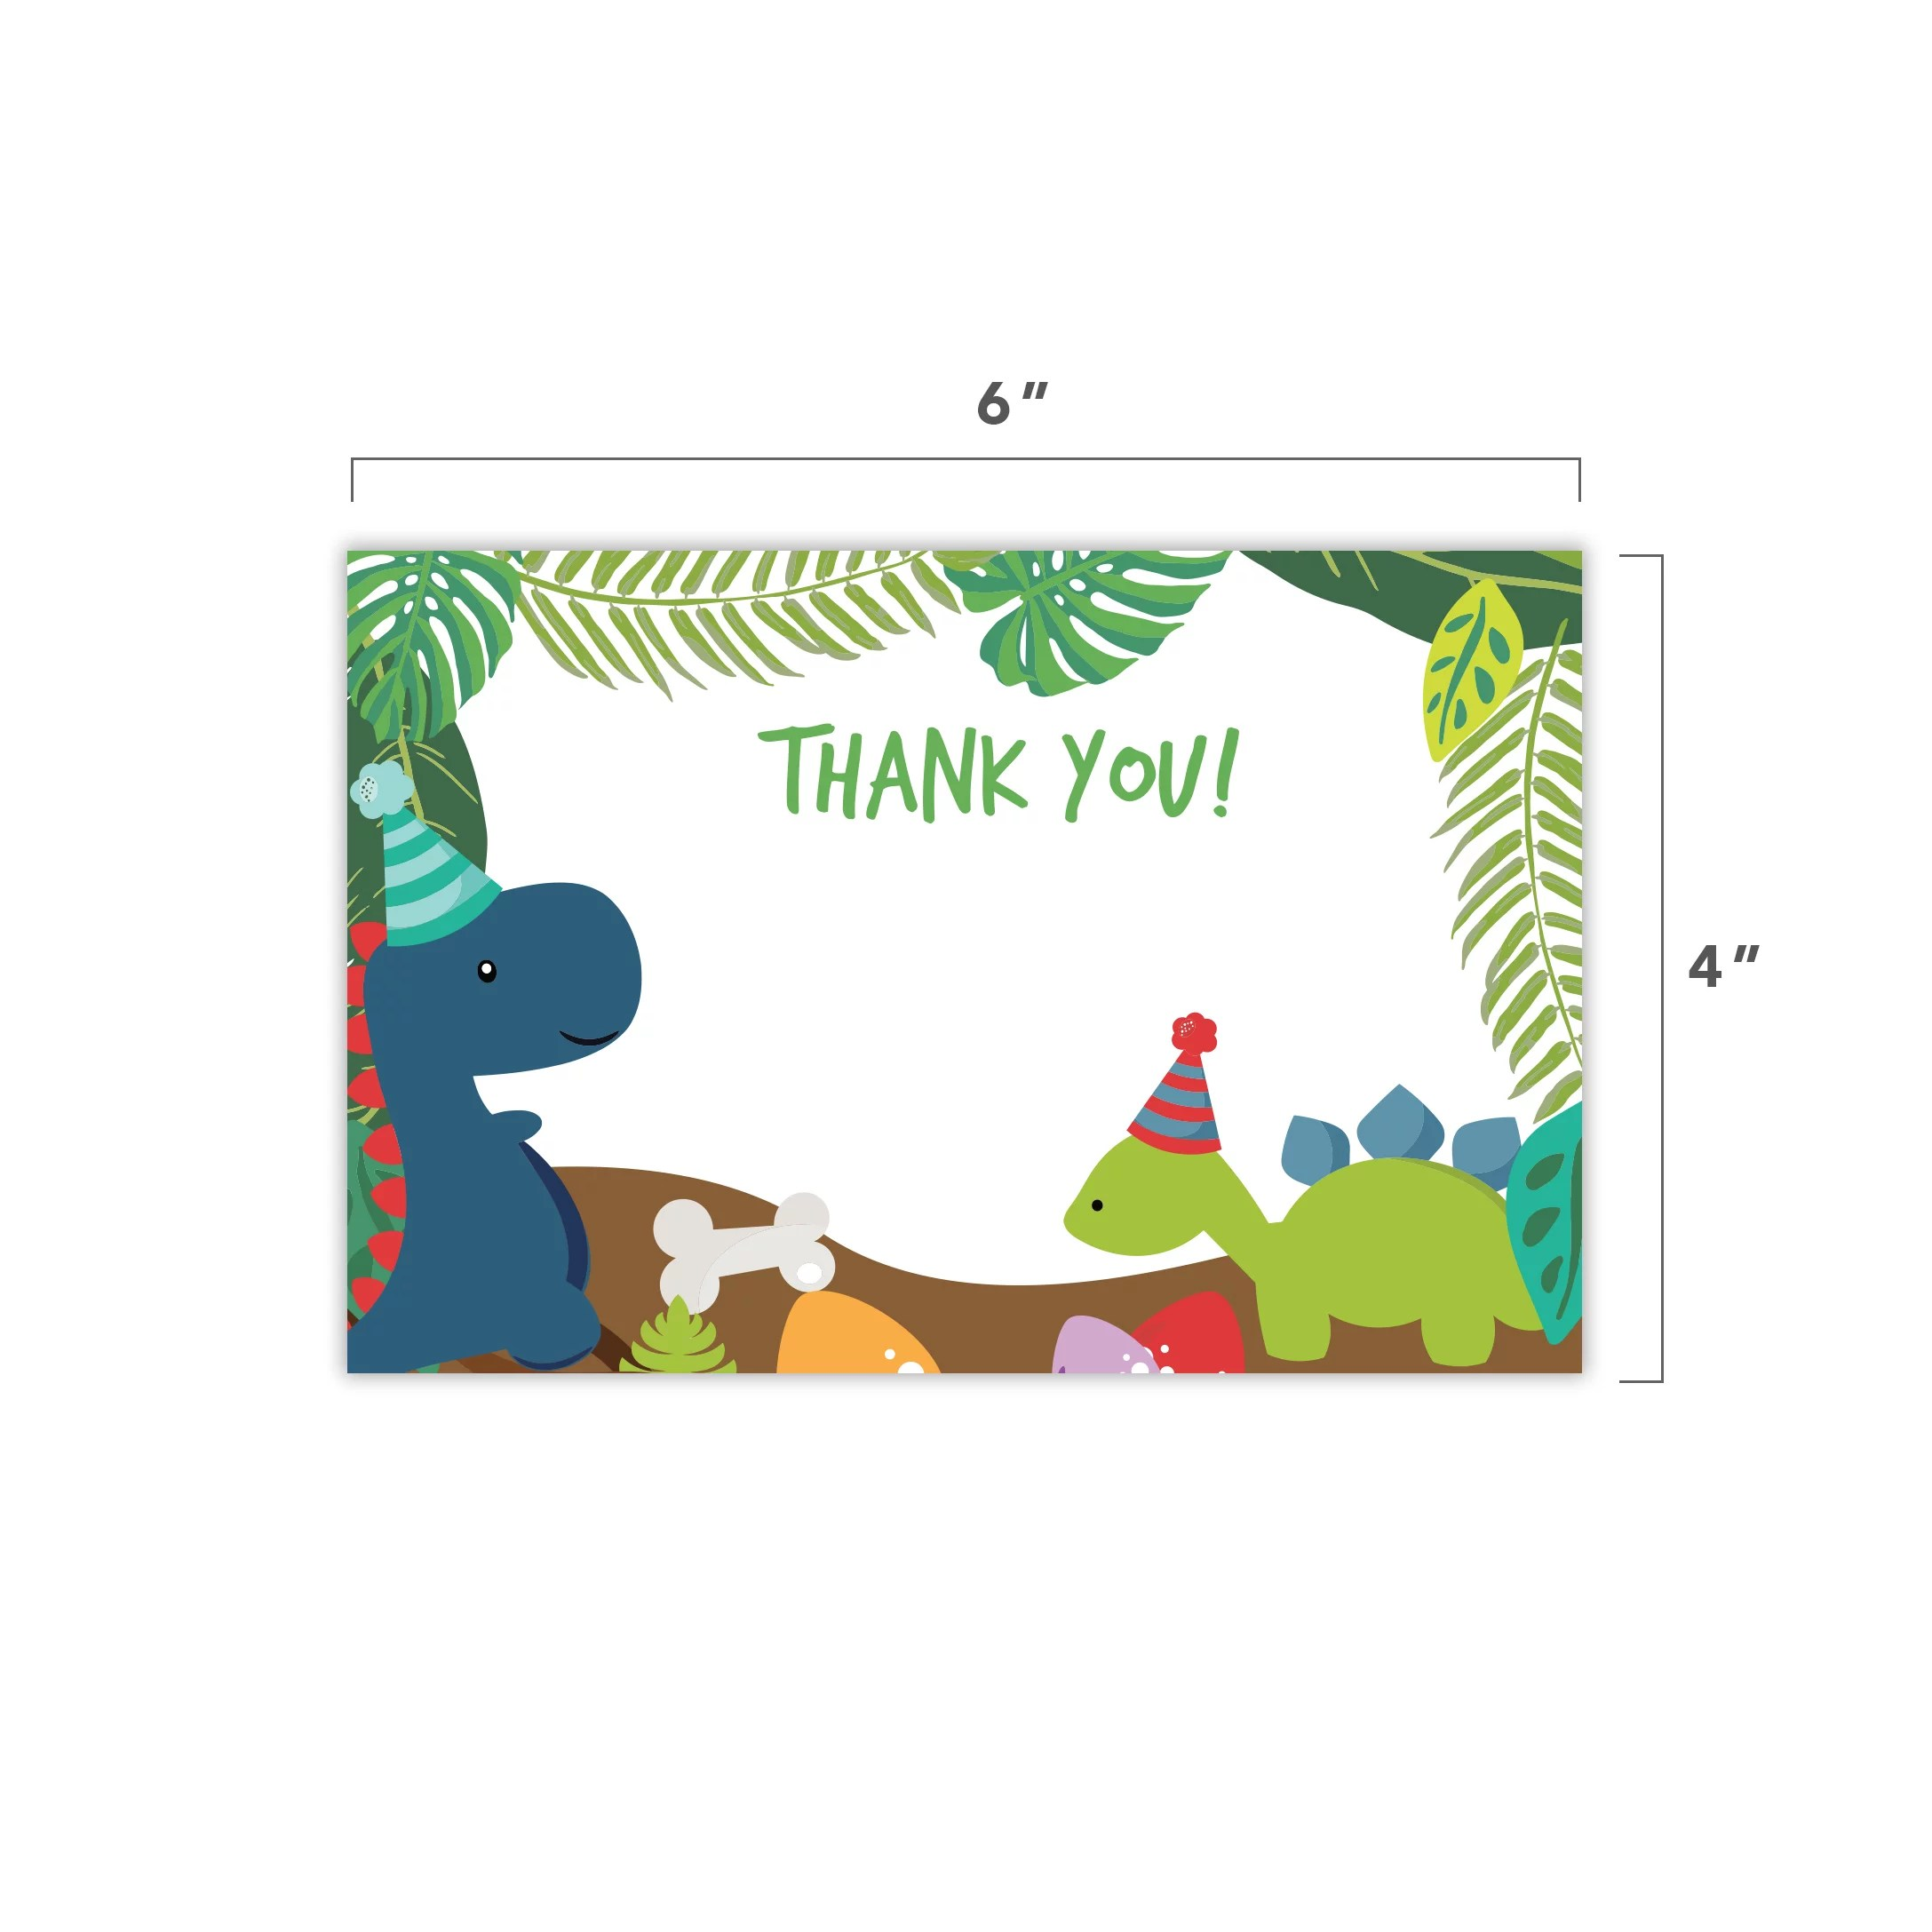 dinosaur thank you cards 25 count with envelopes seal stickers bulk birthday party bridal blank graduation kids children boy girl